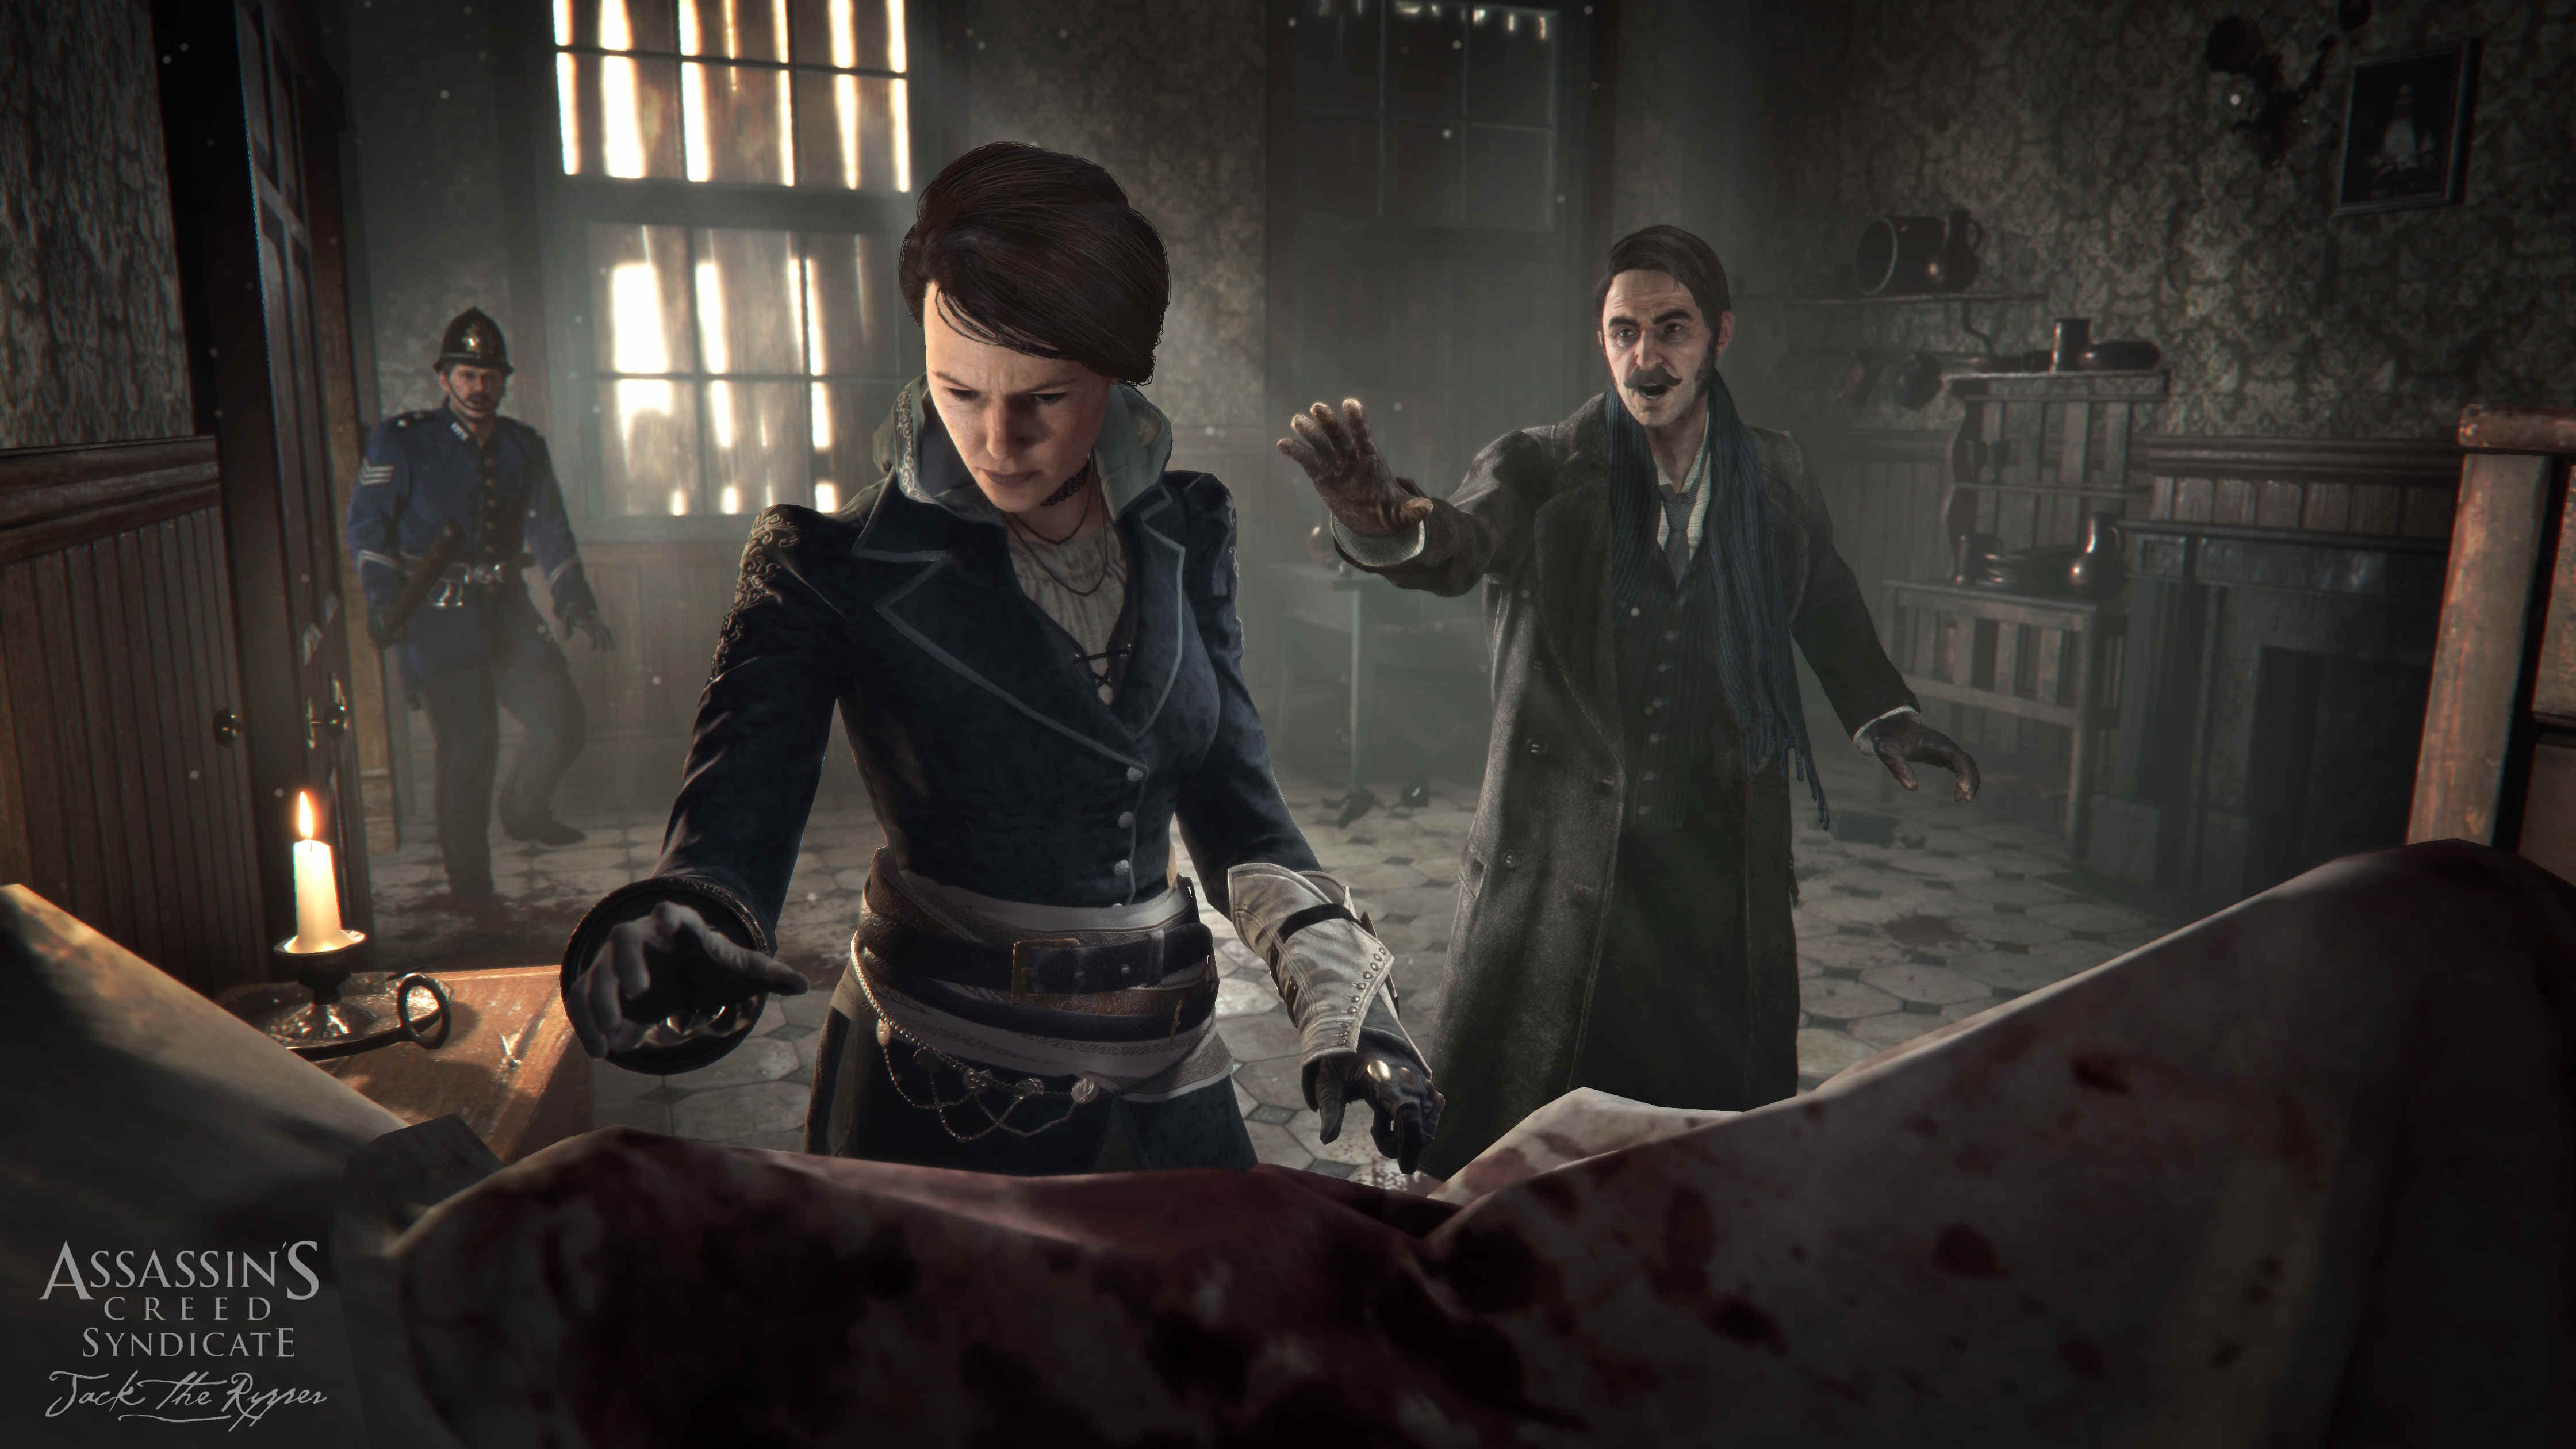 Assassin's Creed Syndicate: Jack l'Eventreur